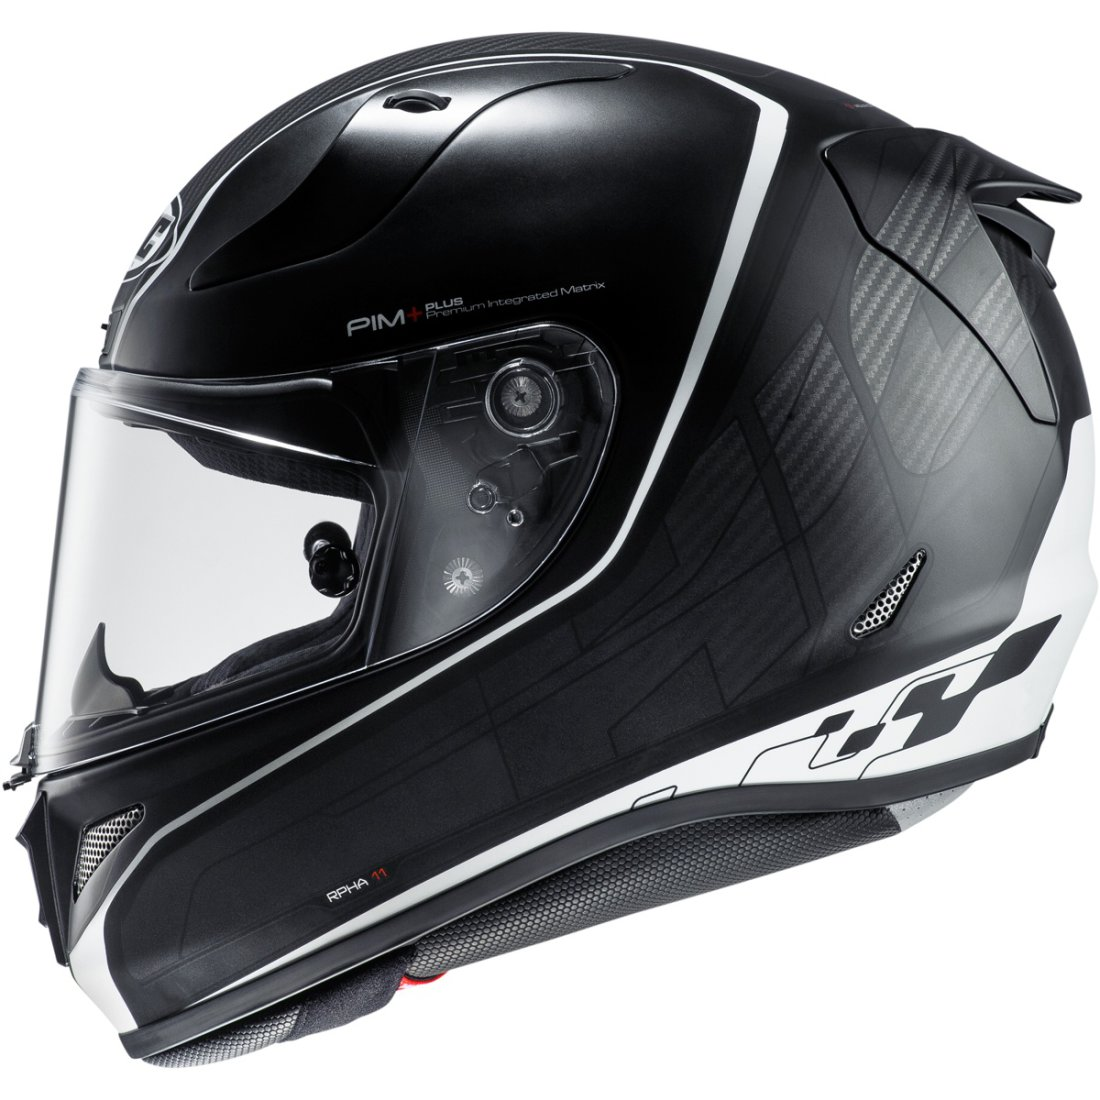 hjc rpha 11 riberte mc 5sf helmet motocard. Black Bedroom Furniture Sets. Home Design Ideas